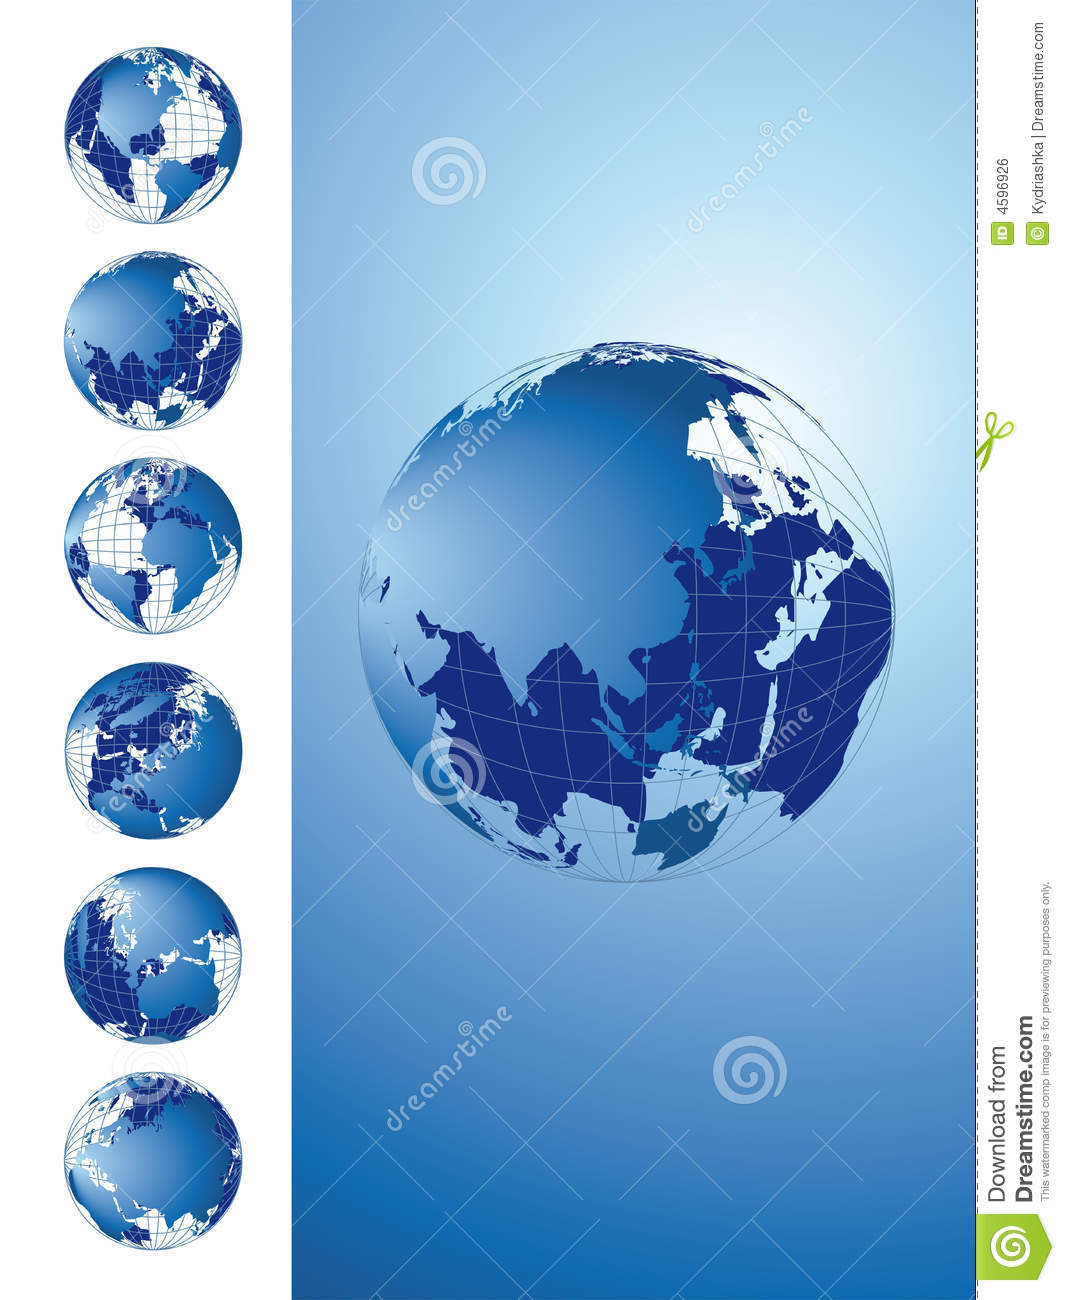 World map 3d globe series stock illustration illustration of world map 3d globe series gumiabroncs Choice Image